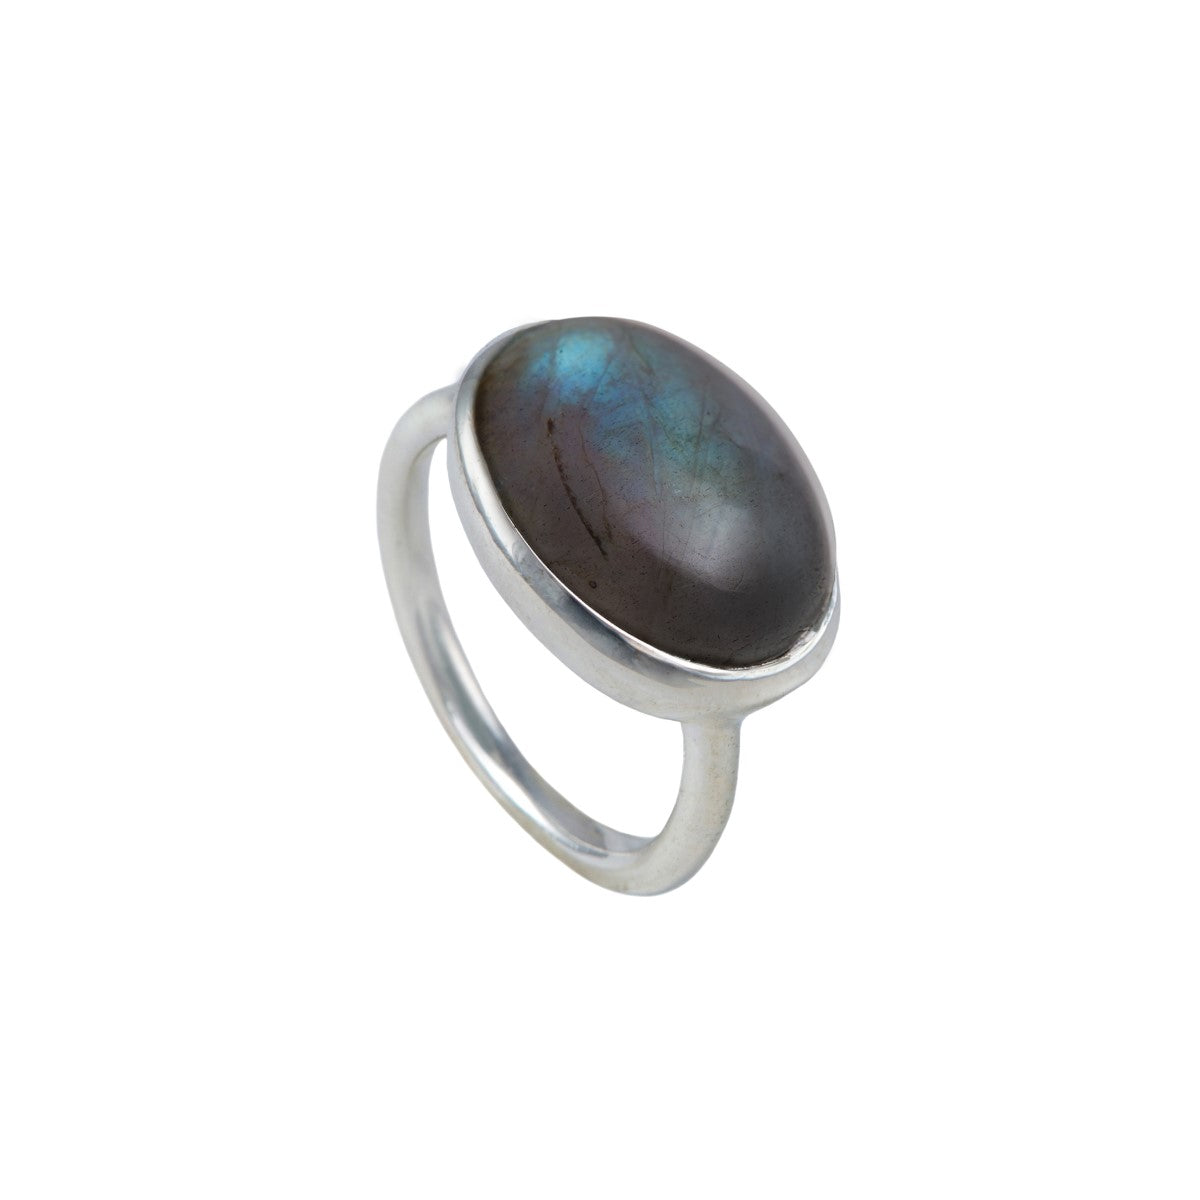 Cabochon Oval Cut Natural Gemstone Sterling Silver Ring - Labradorite